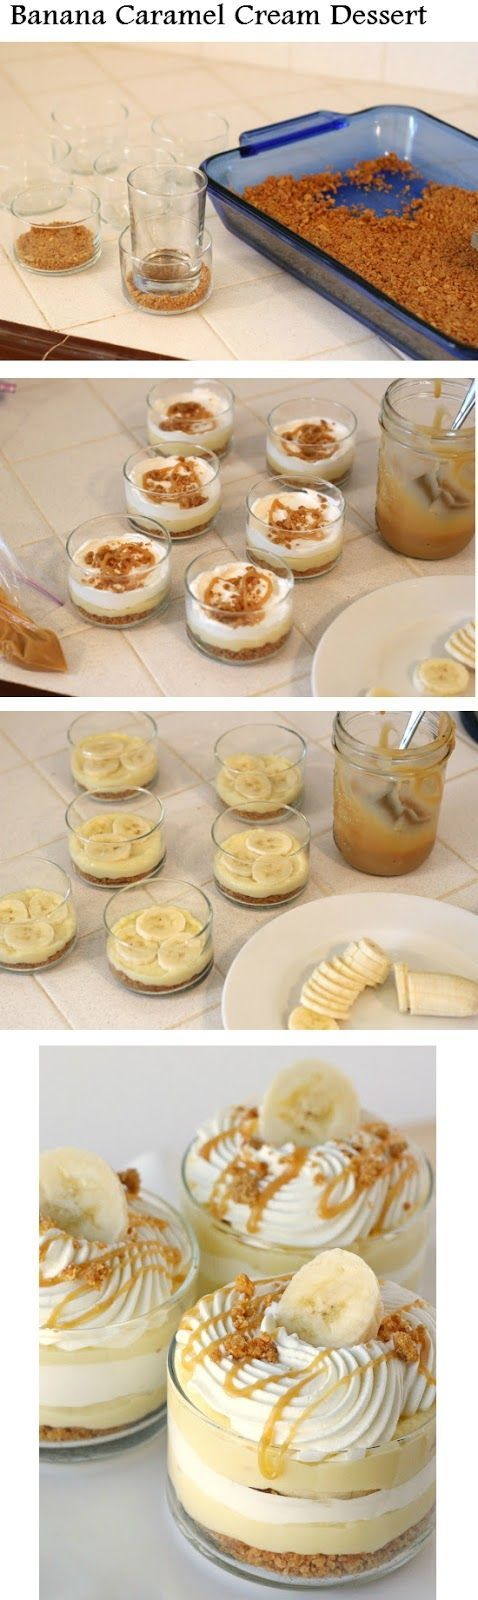 Banana Caramel Cream Dessert   Recipe Sharing Community -- I'm somewhat allergic to bananas but i want this anyway, YOLO